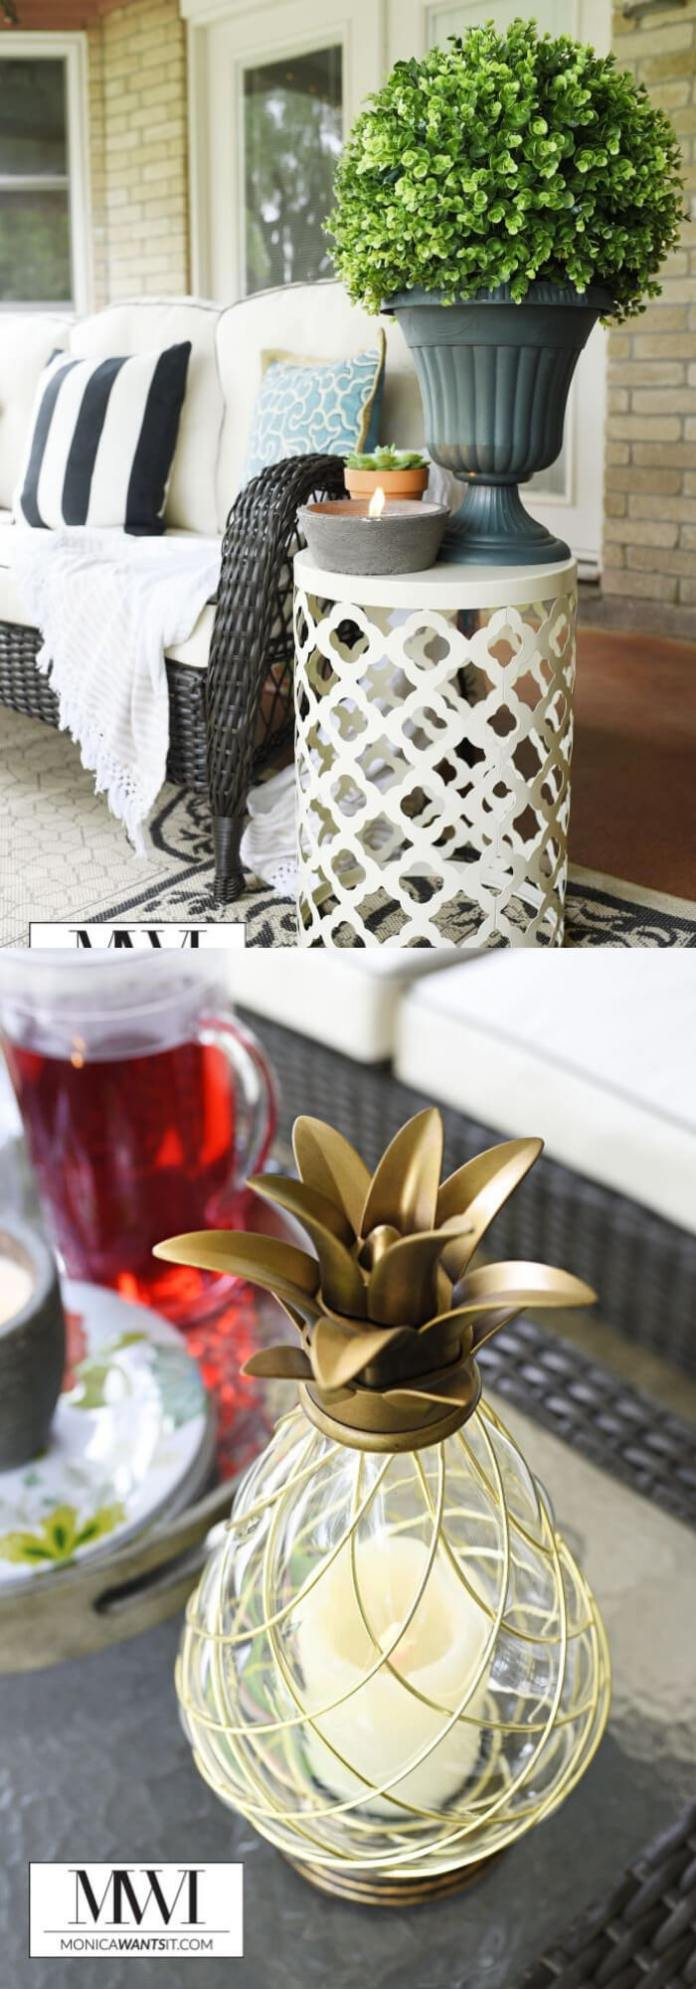 Cute pineapple lamp | Trending & Vintage Porch Lighting Ideas & Designs | FarmFoodFamily.com